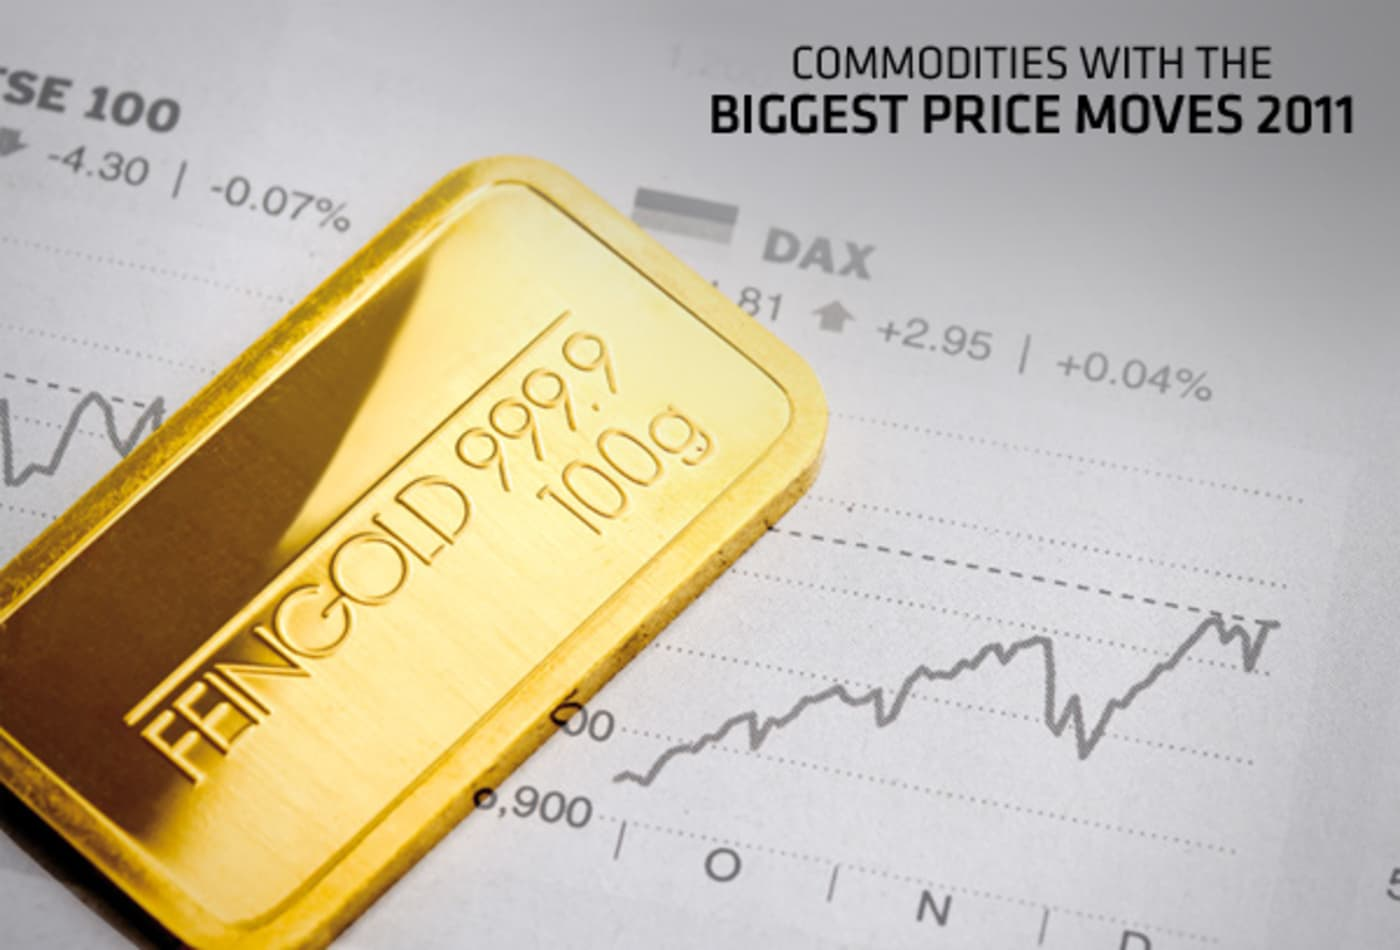 CNBC_commodities_biggest_price_moves_cover.jpg